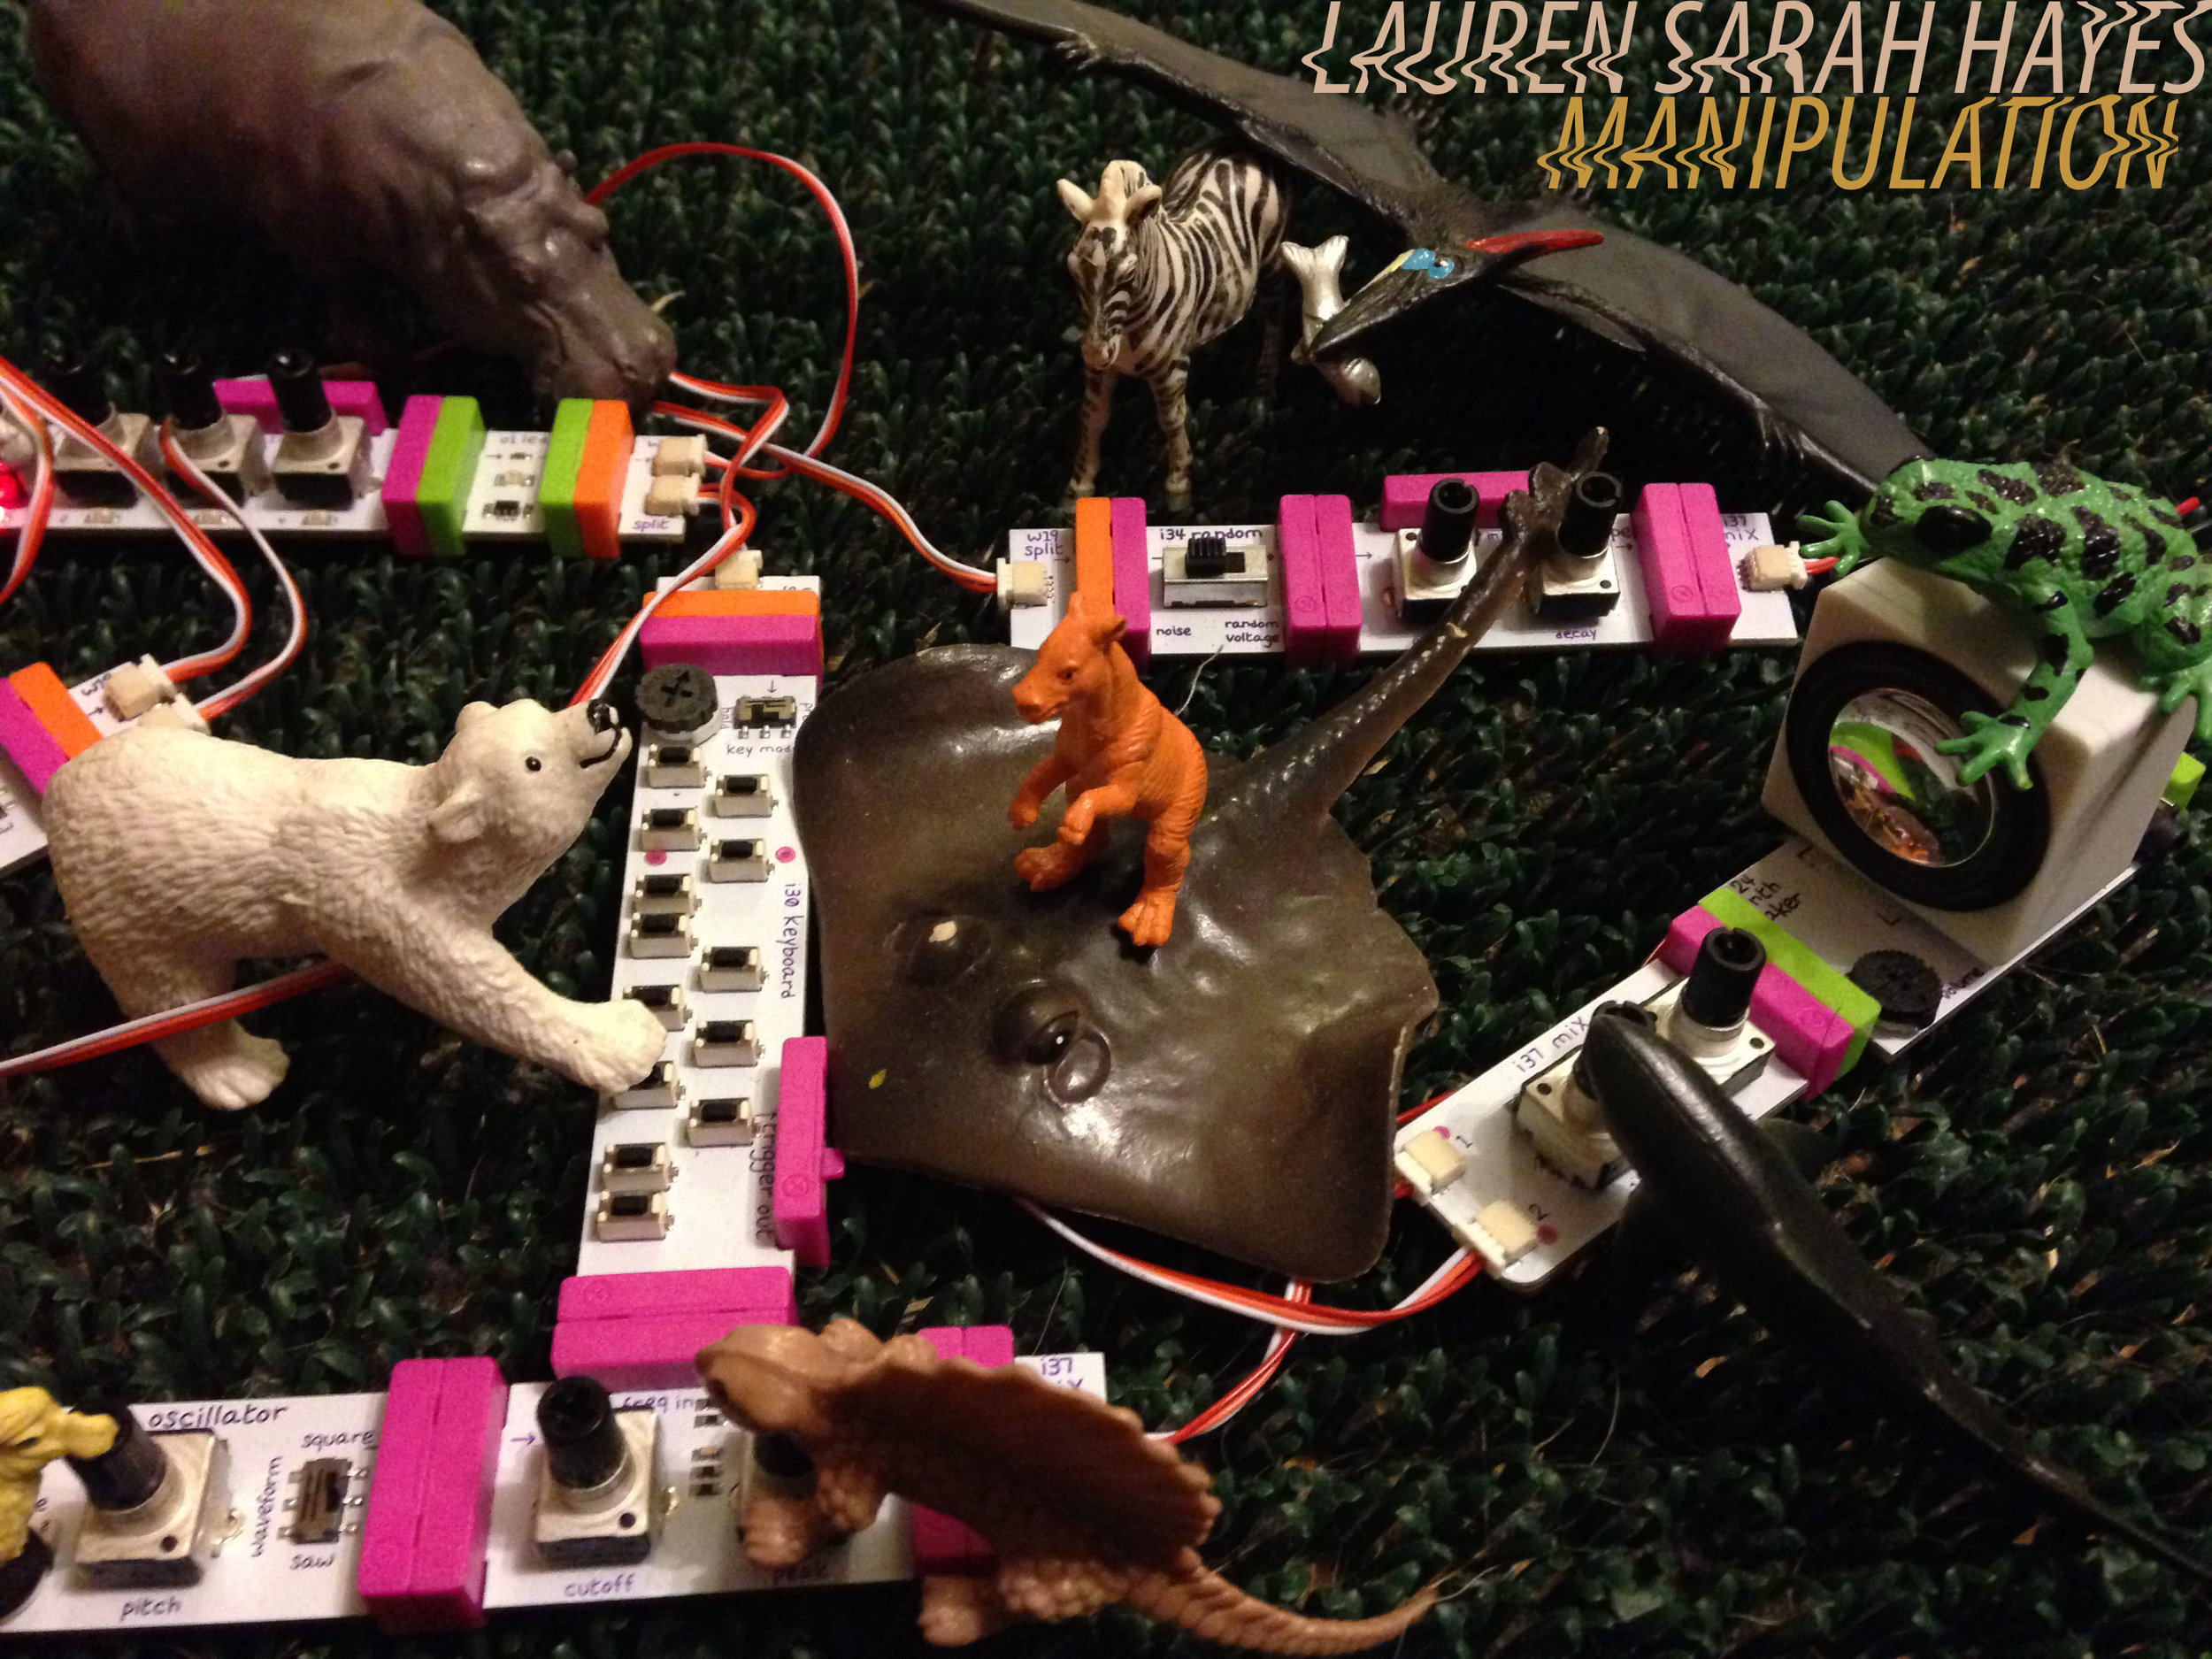 MANIPULATION is a collection of unedited one-take improvisations performed on unpredictable ecological hybrid analogue/digital/human systems. instability arises from the fragilities of touch-based engagement and mutually affecting relationships within the technology. performed 2008 – 2016.  all music by lauren sarah hayes.  release date: september 15, 2016.